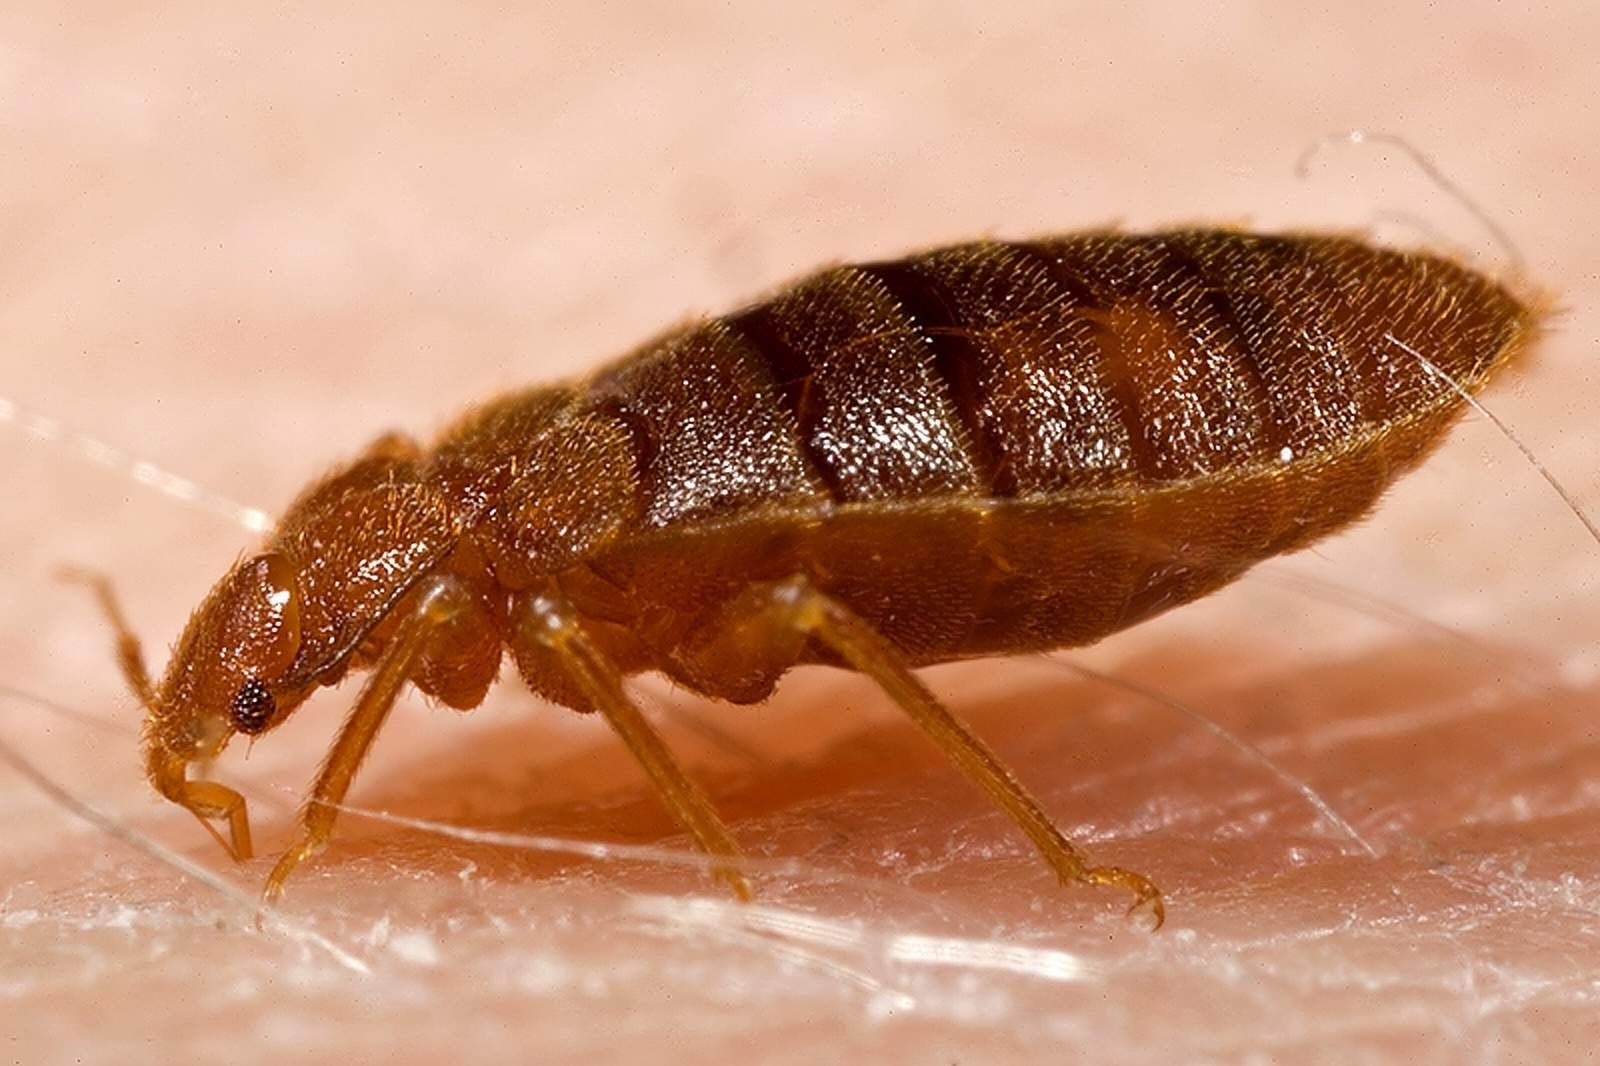 bed bugs Google Search Bed bug bites, Bed bugs, Bed